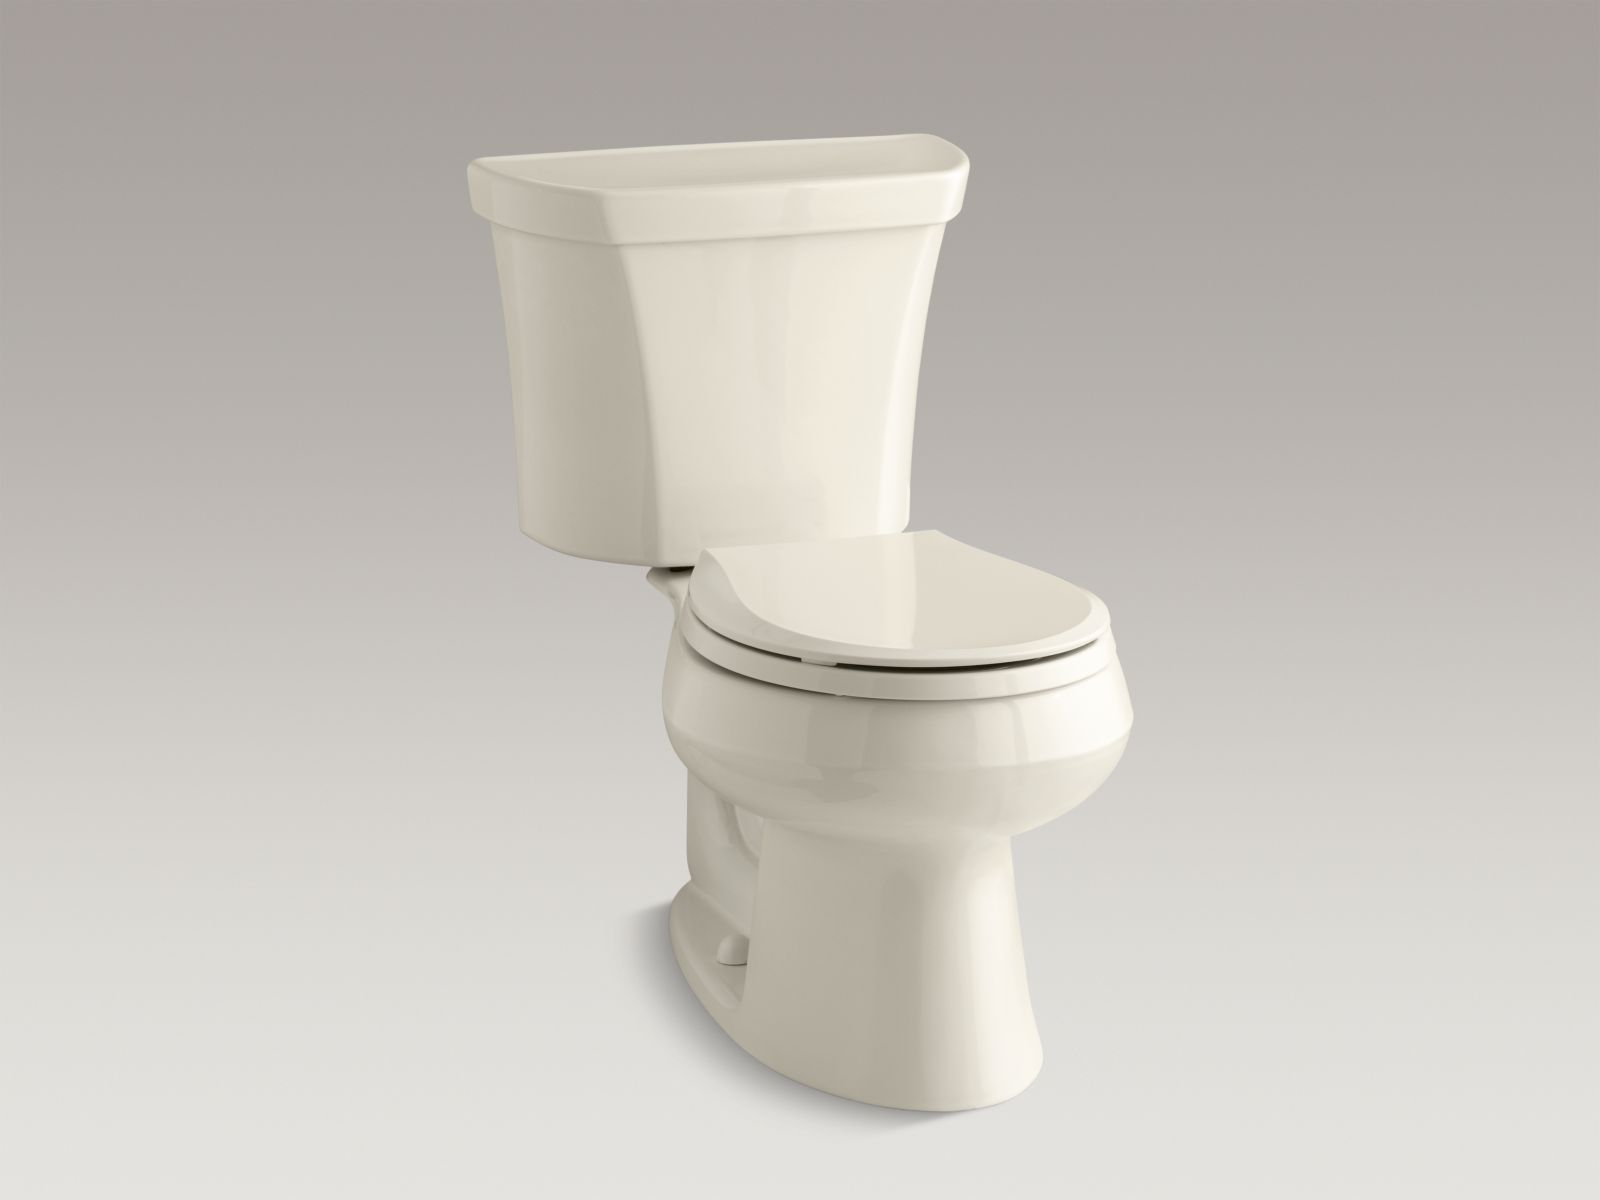 Kohler Wellworth® K-3987-RA-47 Wellworth® two-piece round-front dual-flush toilet with Class Five® flush technology and right-hand trip lever Almond